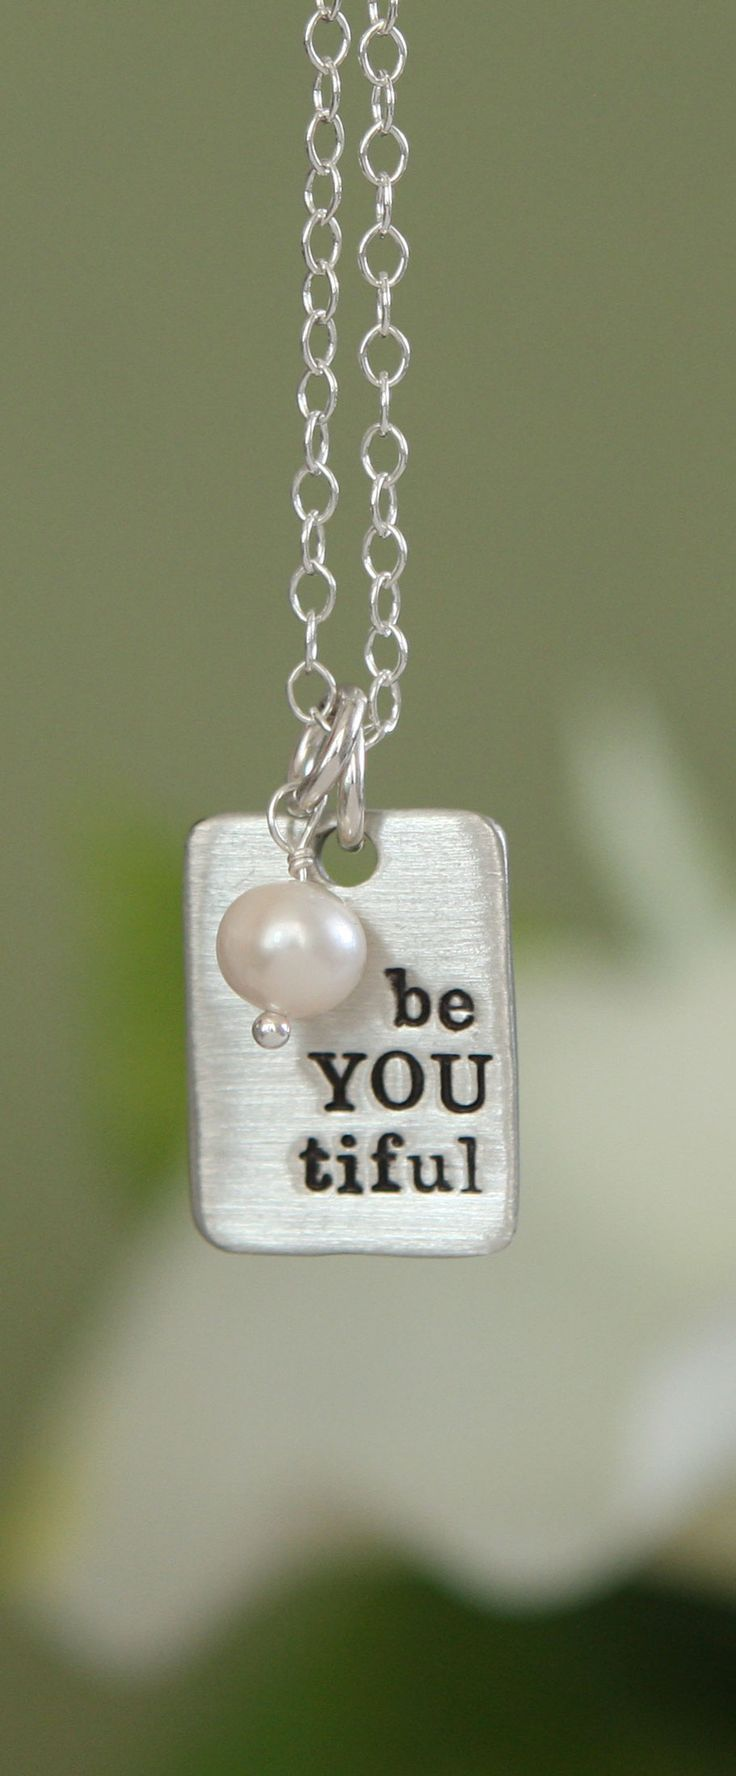 170 best inspirational jewelry images on pinterest inspirational inspirational necklaces and word pendants with positive messages aloadofball Gallery